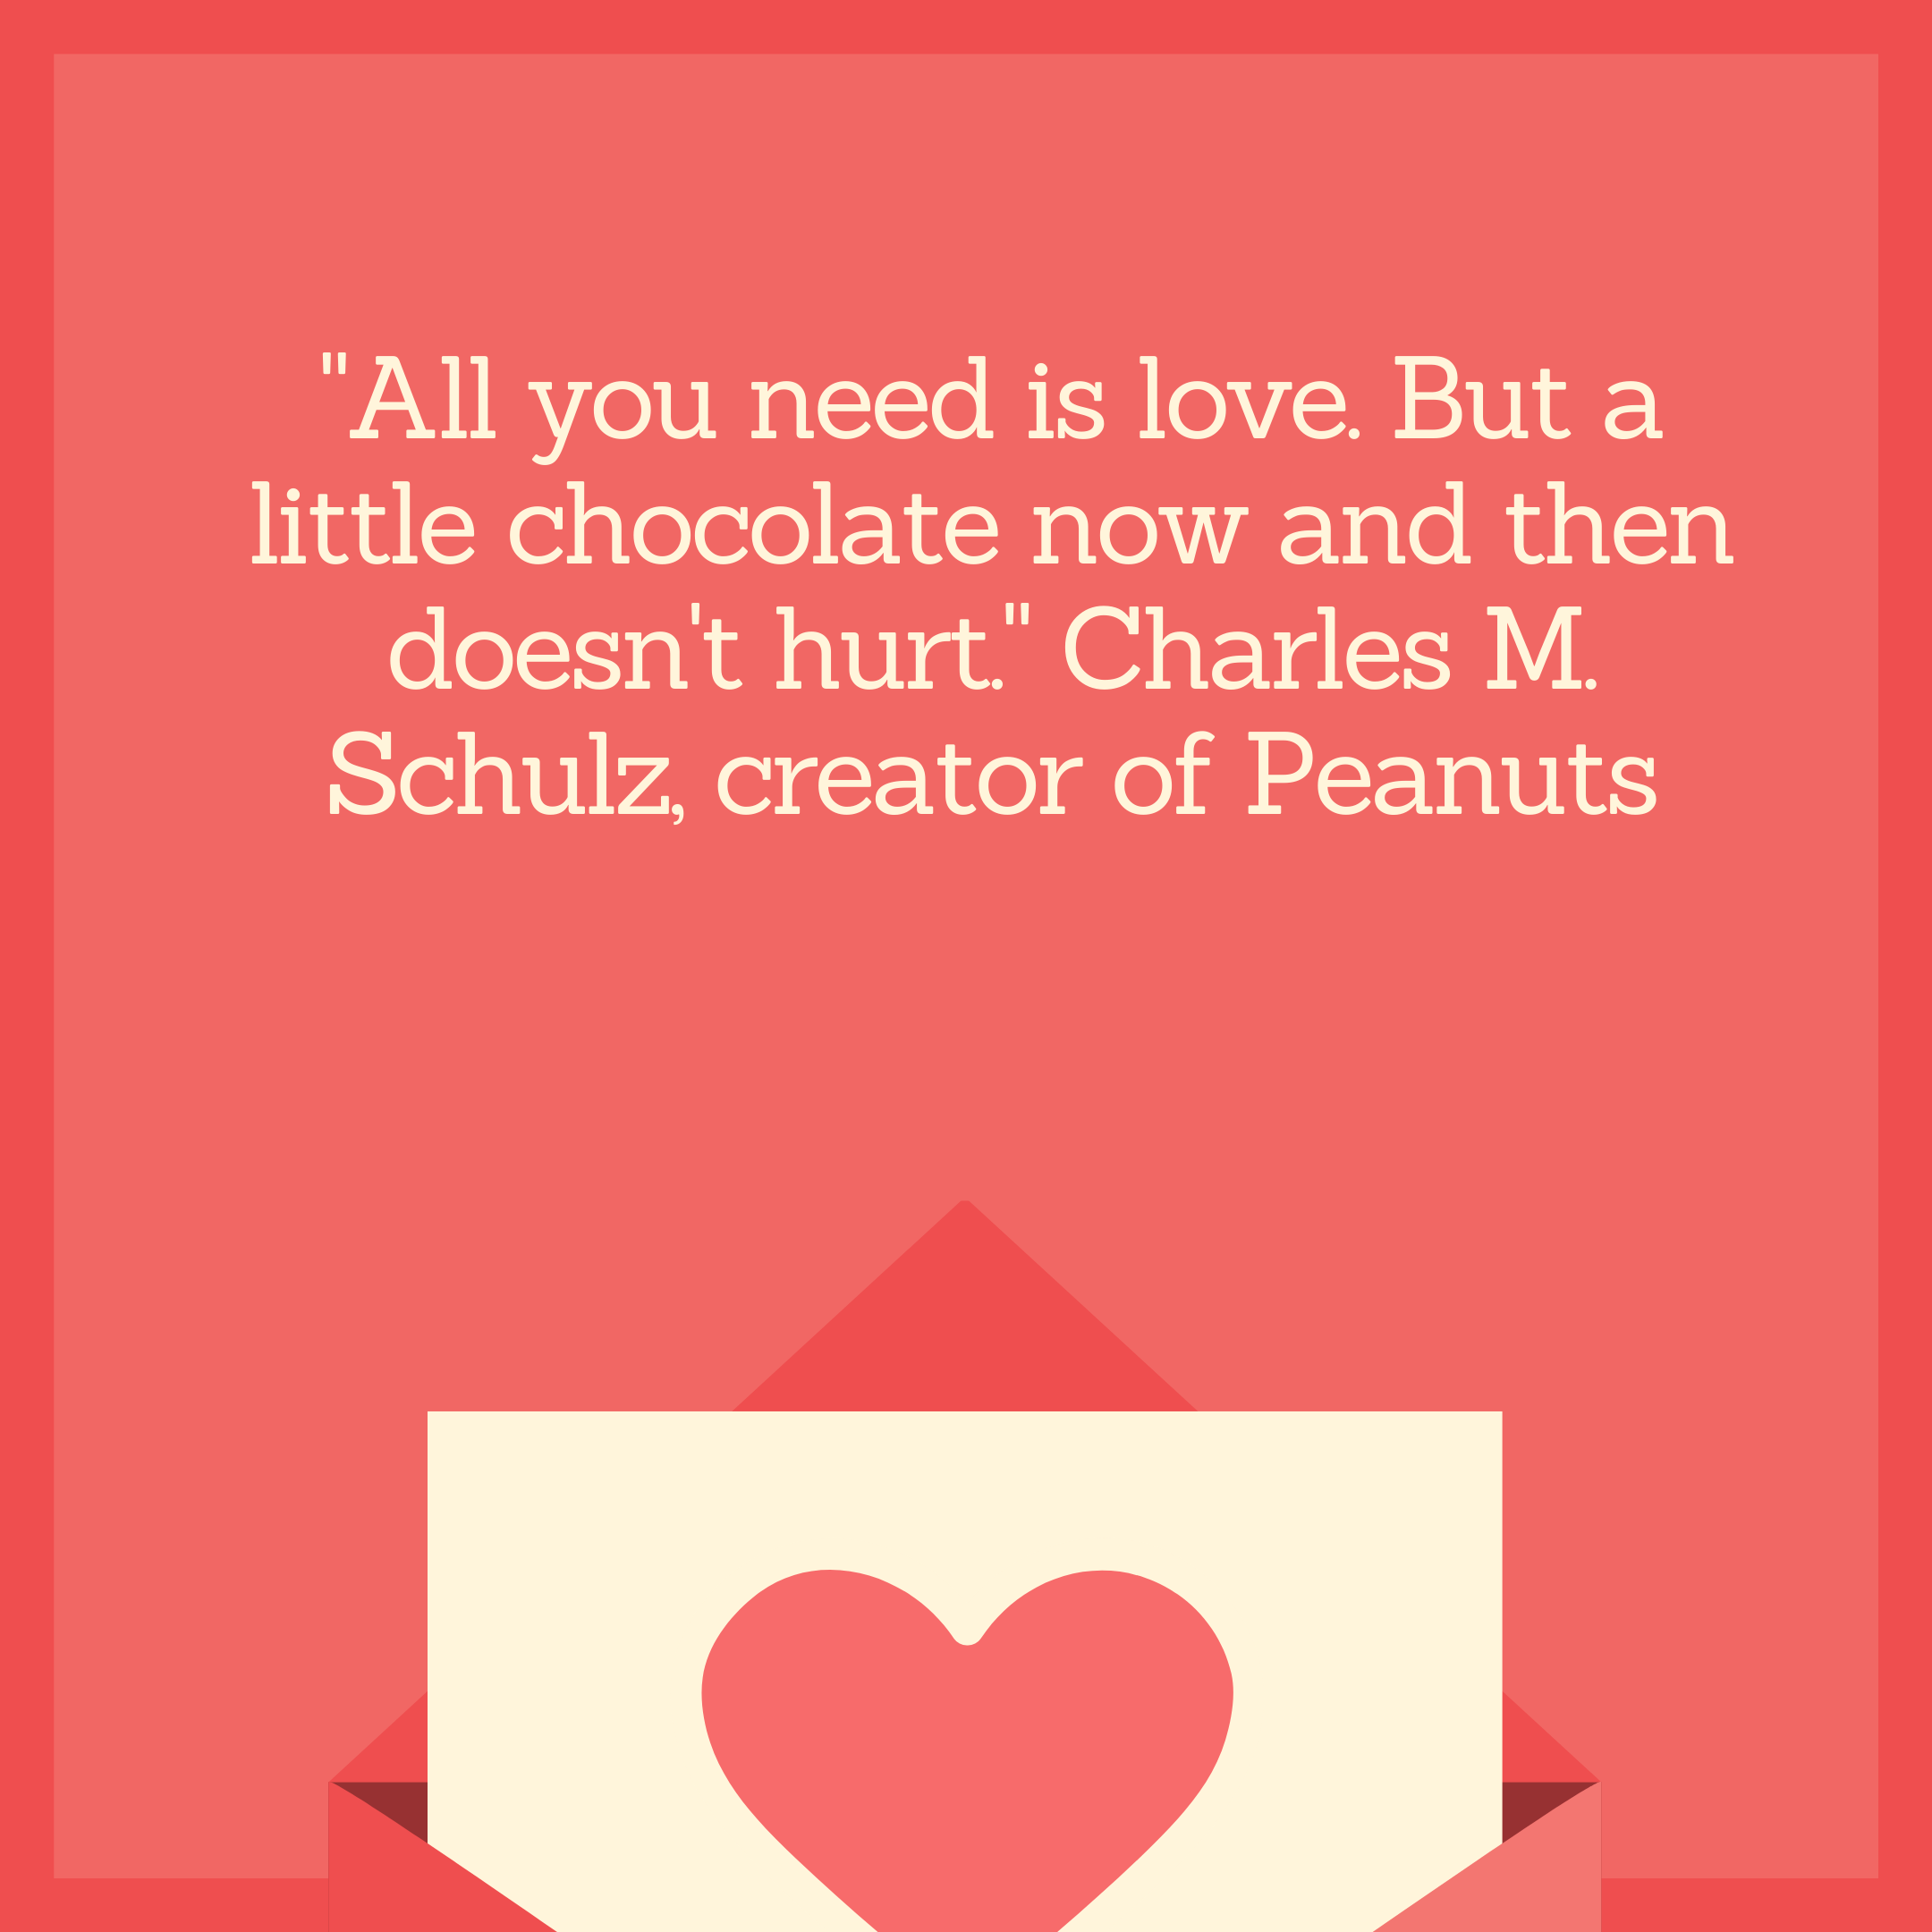 """All you need is love. But a little chocolate now and then doesn't hurt."" Charles M. Schulz, creator of Peanuts"